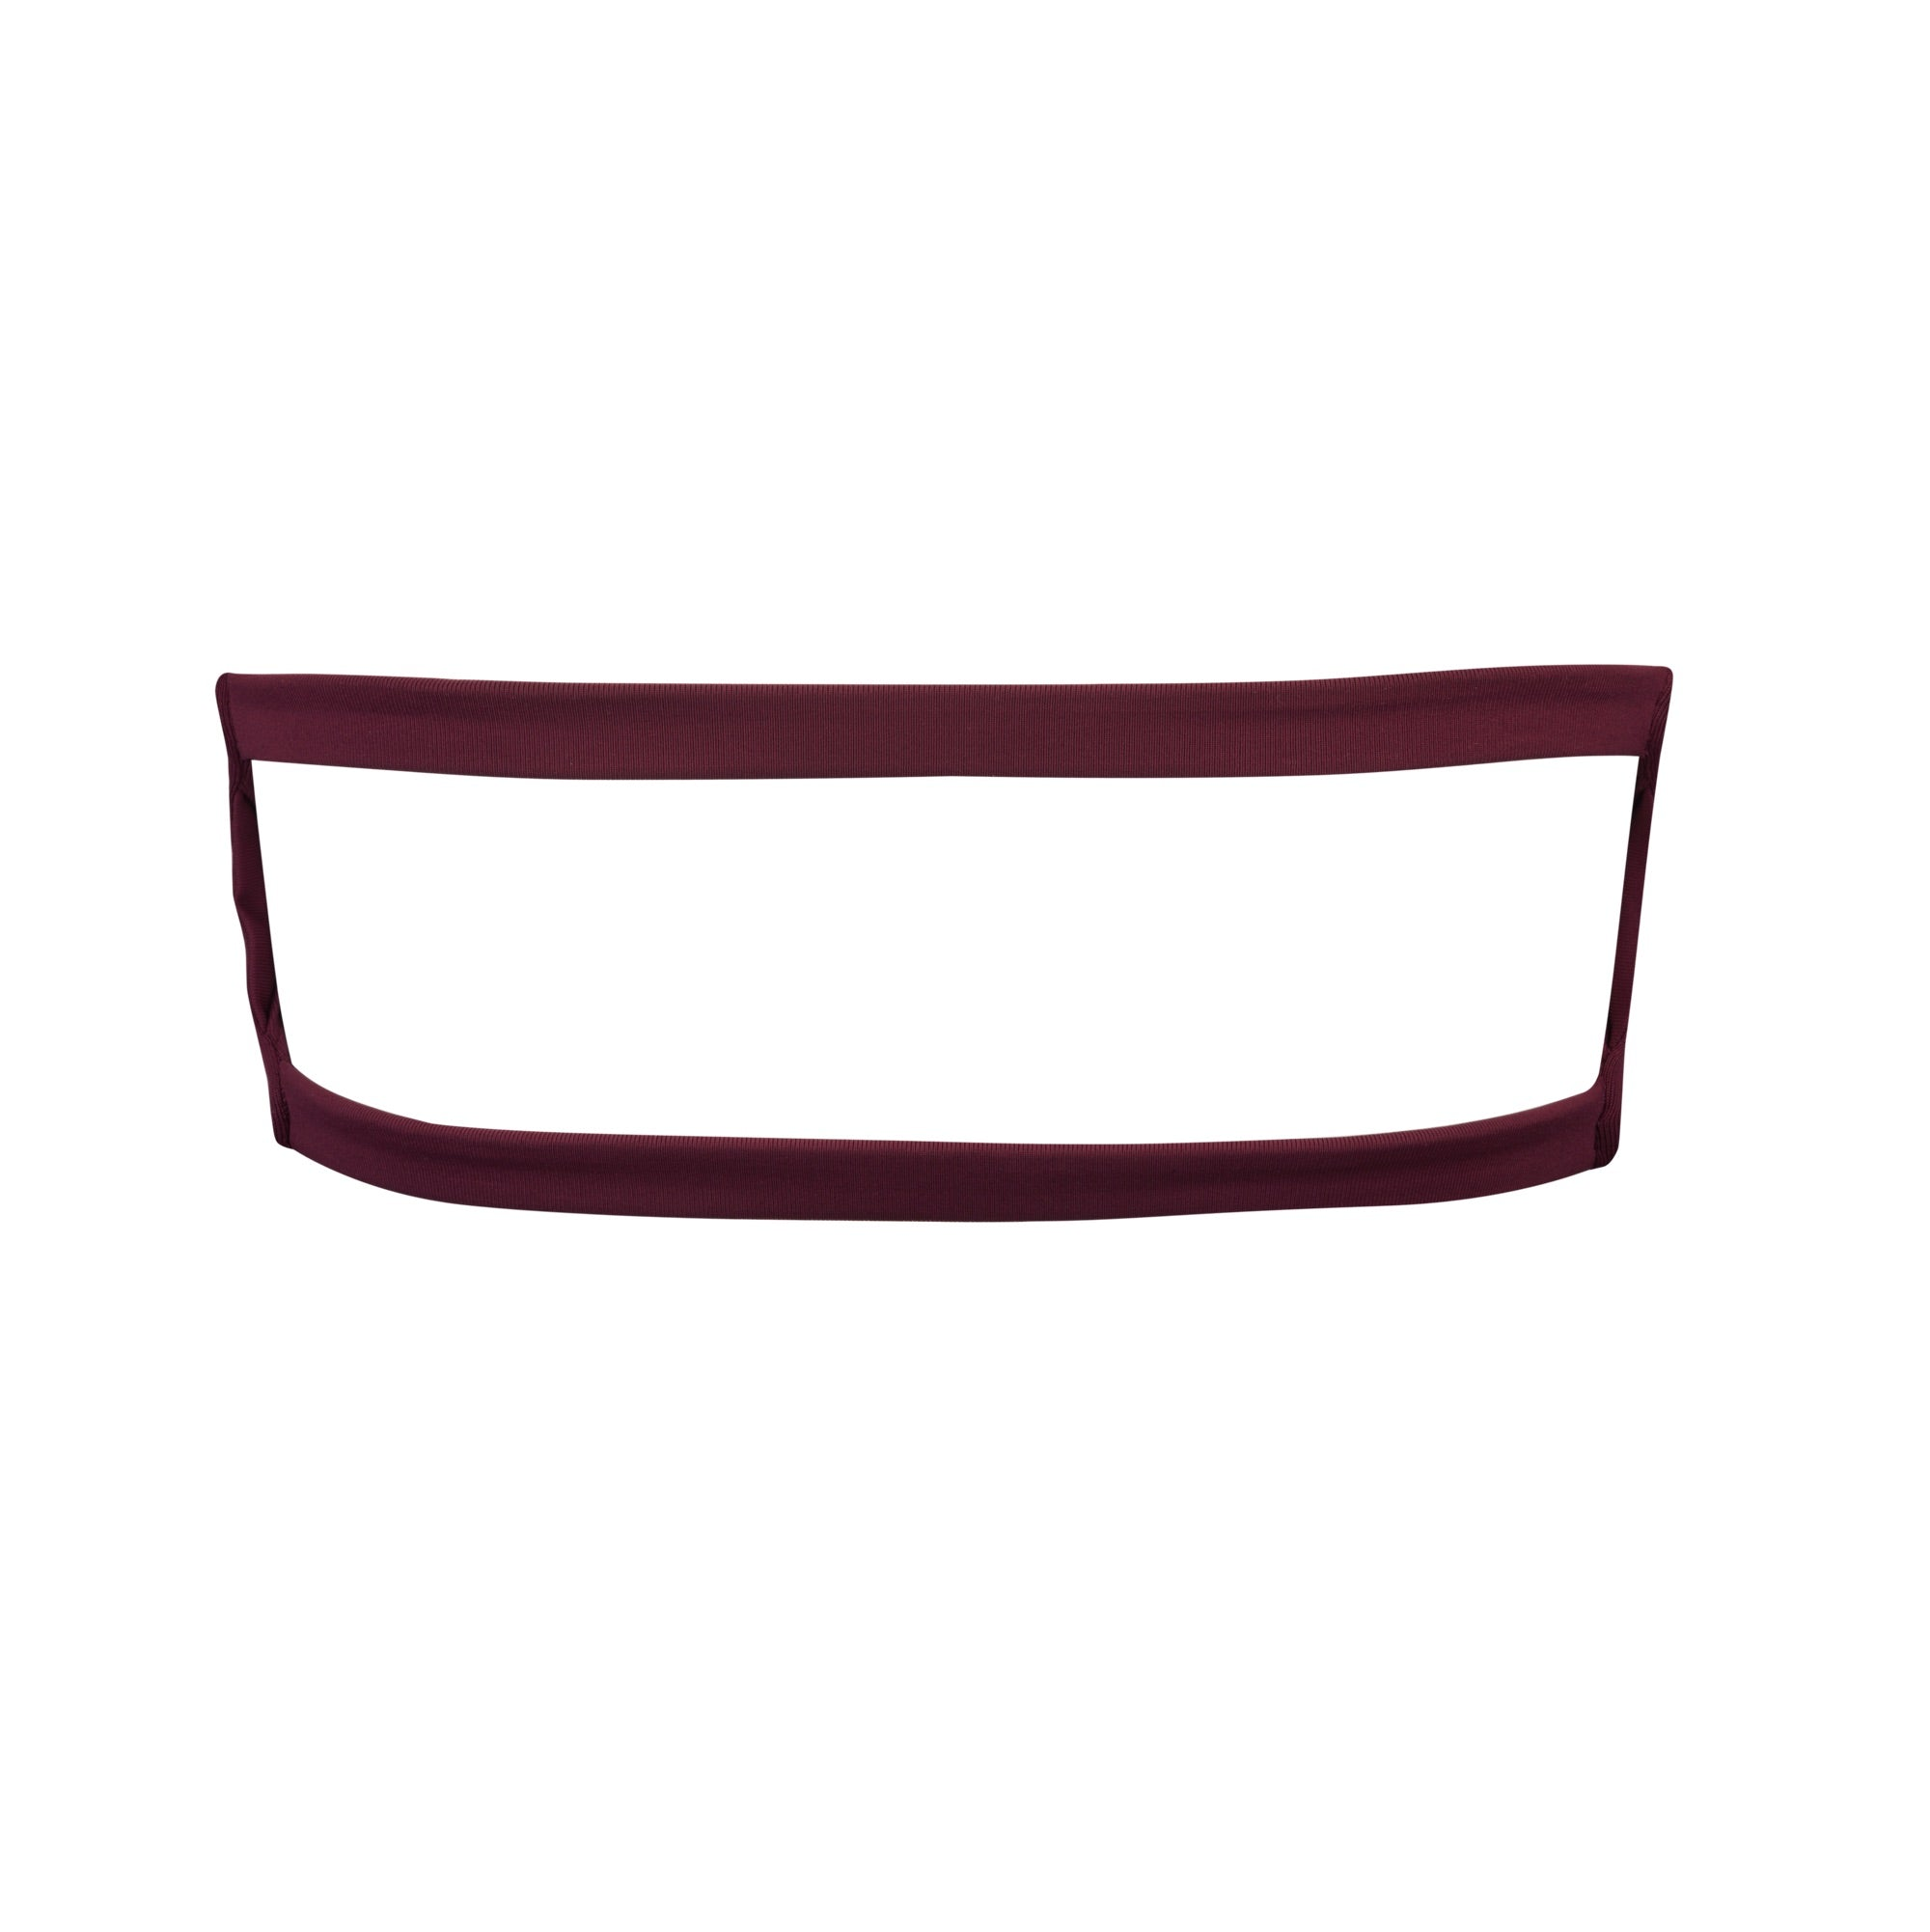 Bellini Bikini Top in Maroon by Tuhkana Swimwear